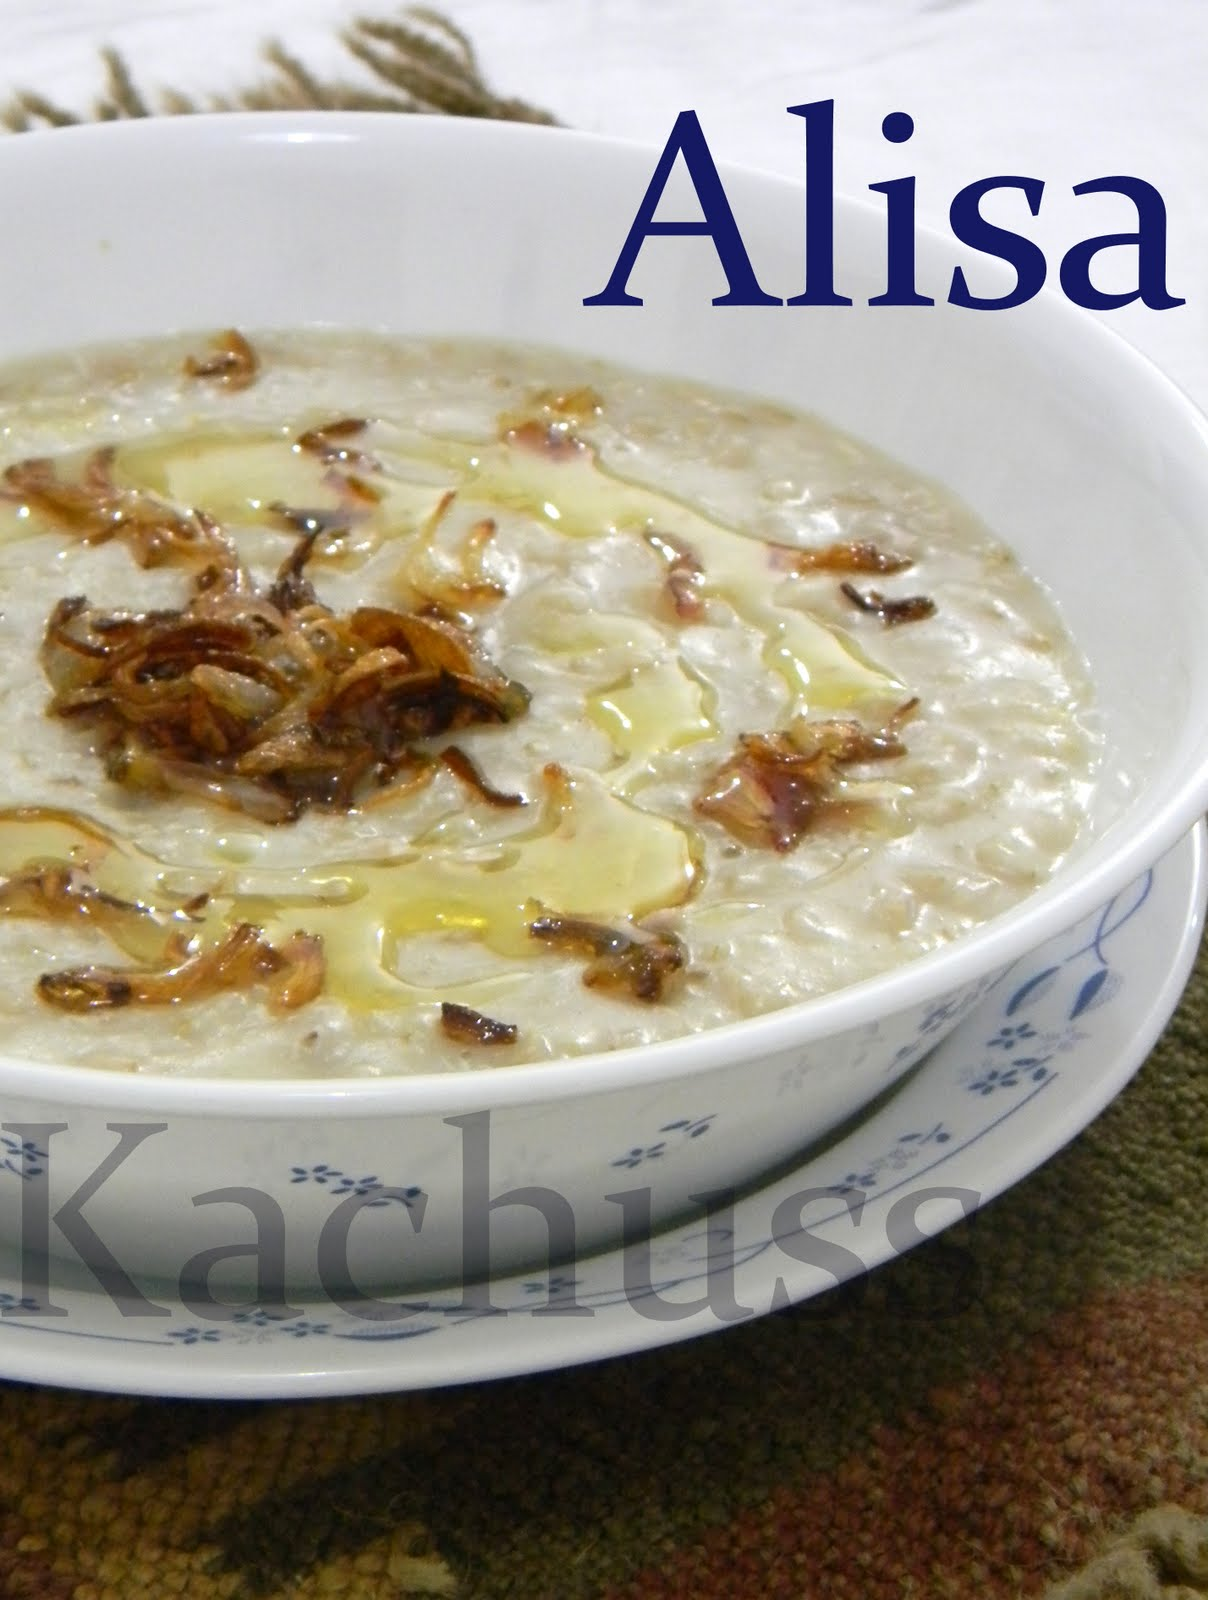 Kachuss delights alisa arees we usually have it plain or with some delicious chicken or beef fry branless wheat is used in this recipe vegetarians can avoid chicken forumfinder Gallery